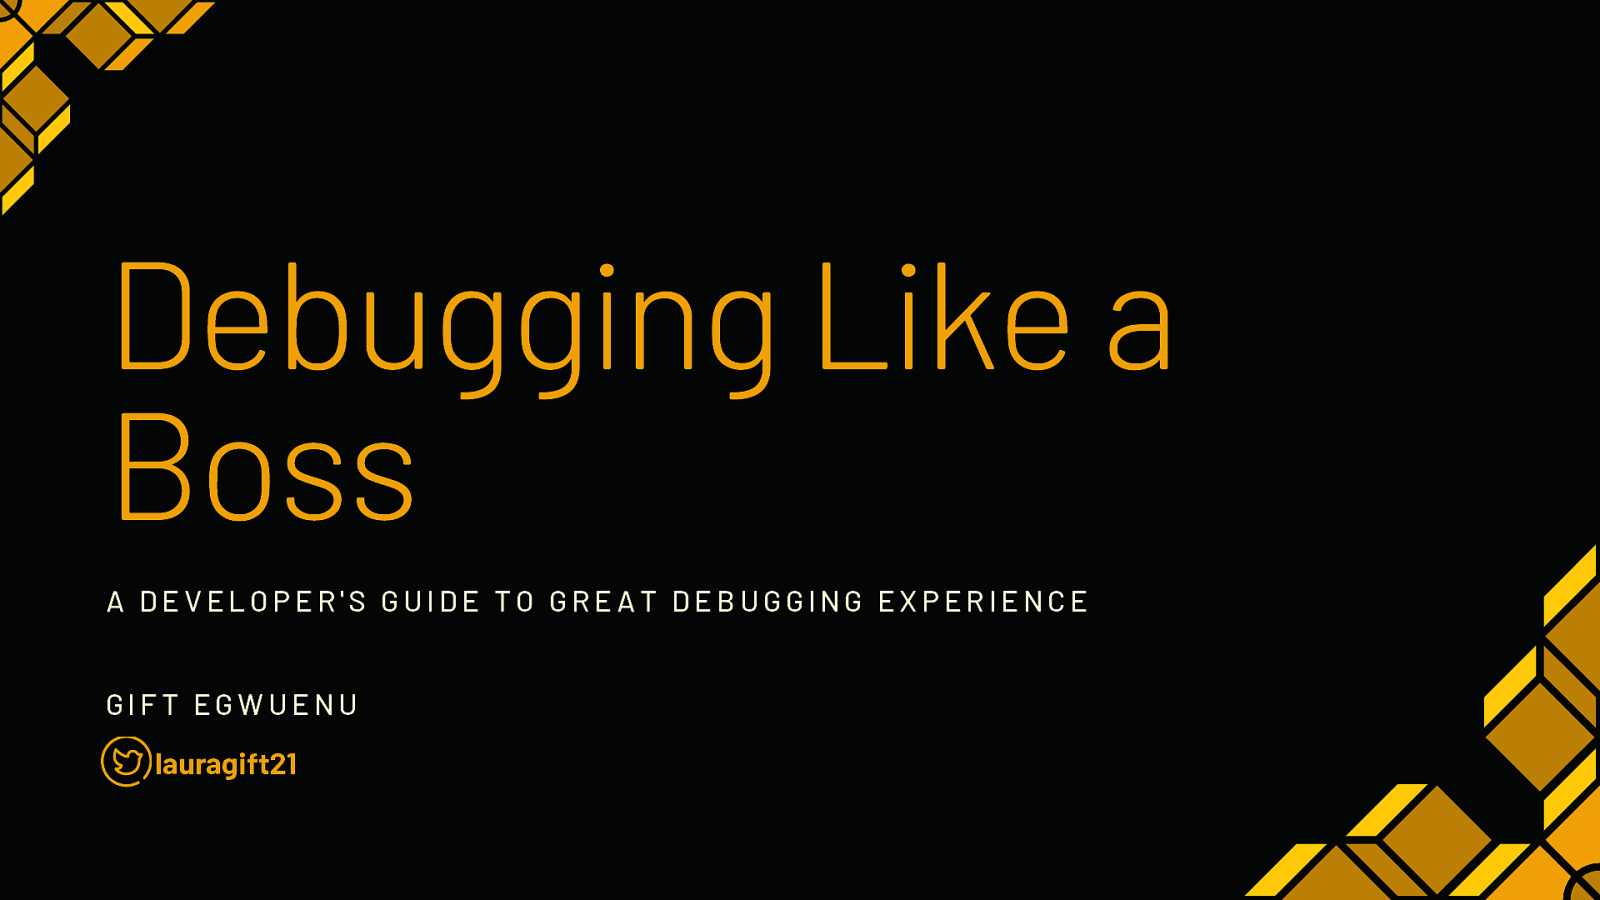 Debugging Like a Boss: A Developer's Guide to Great Debugging Experience